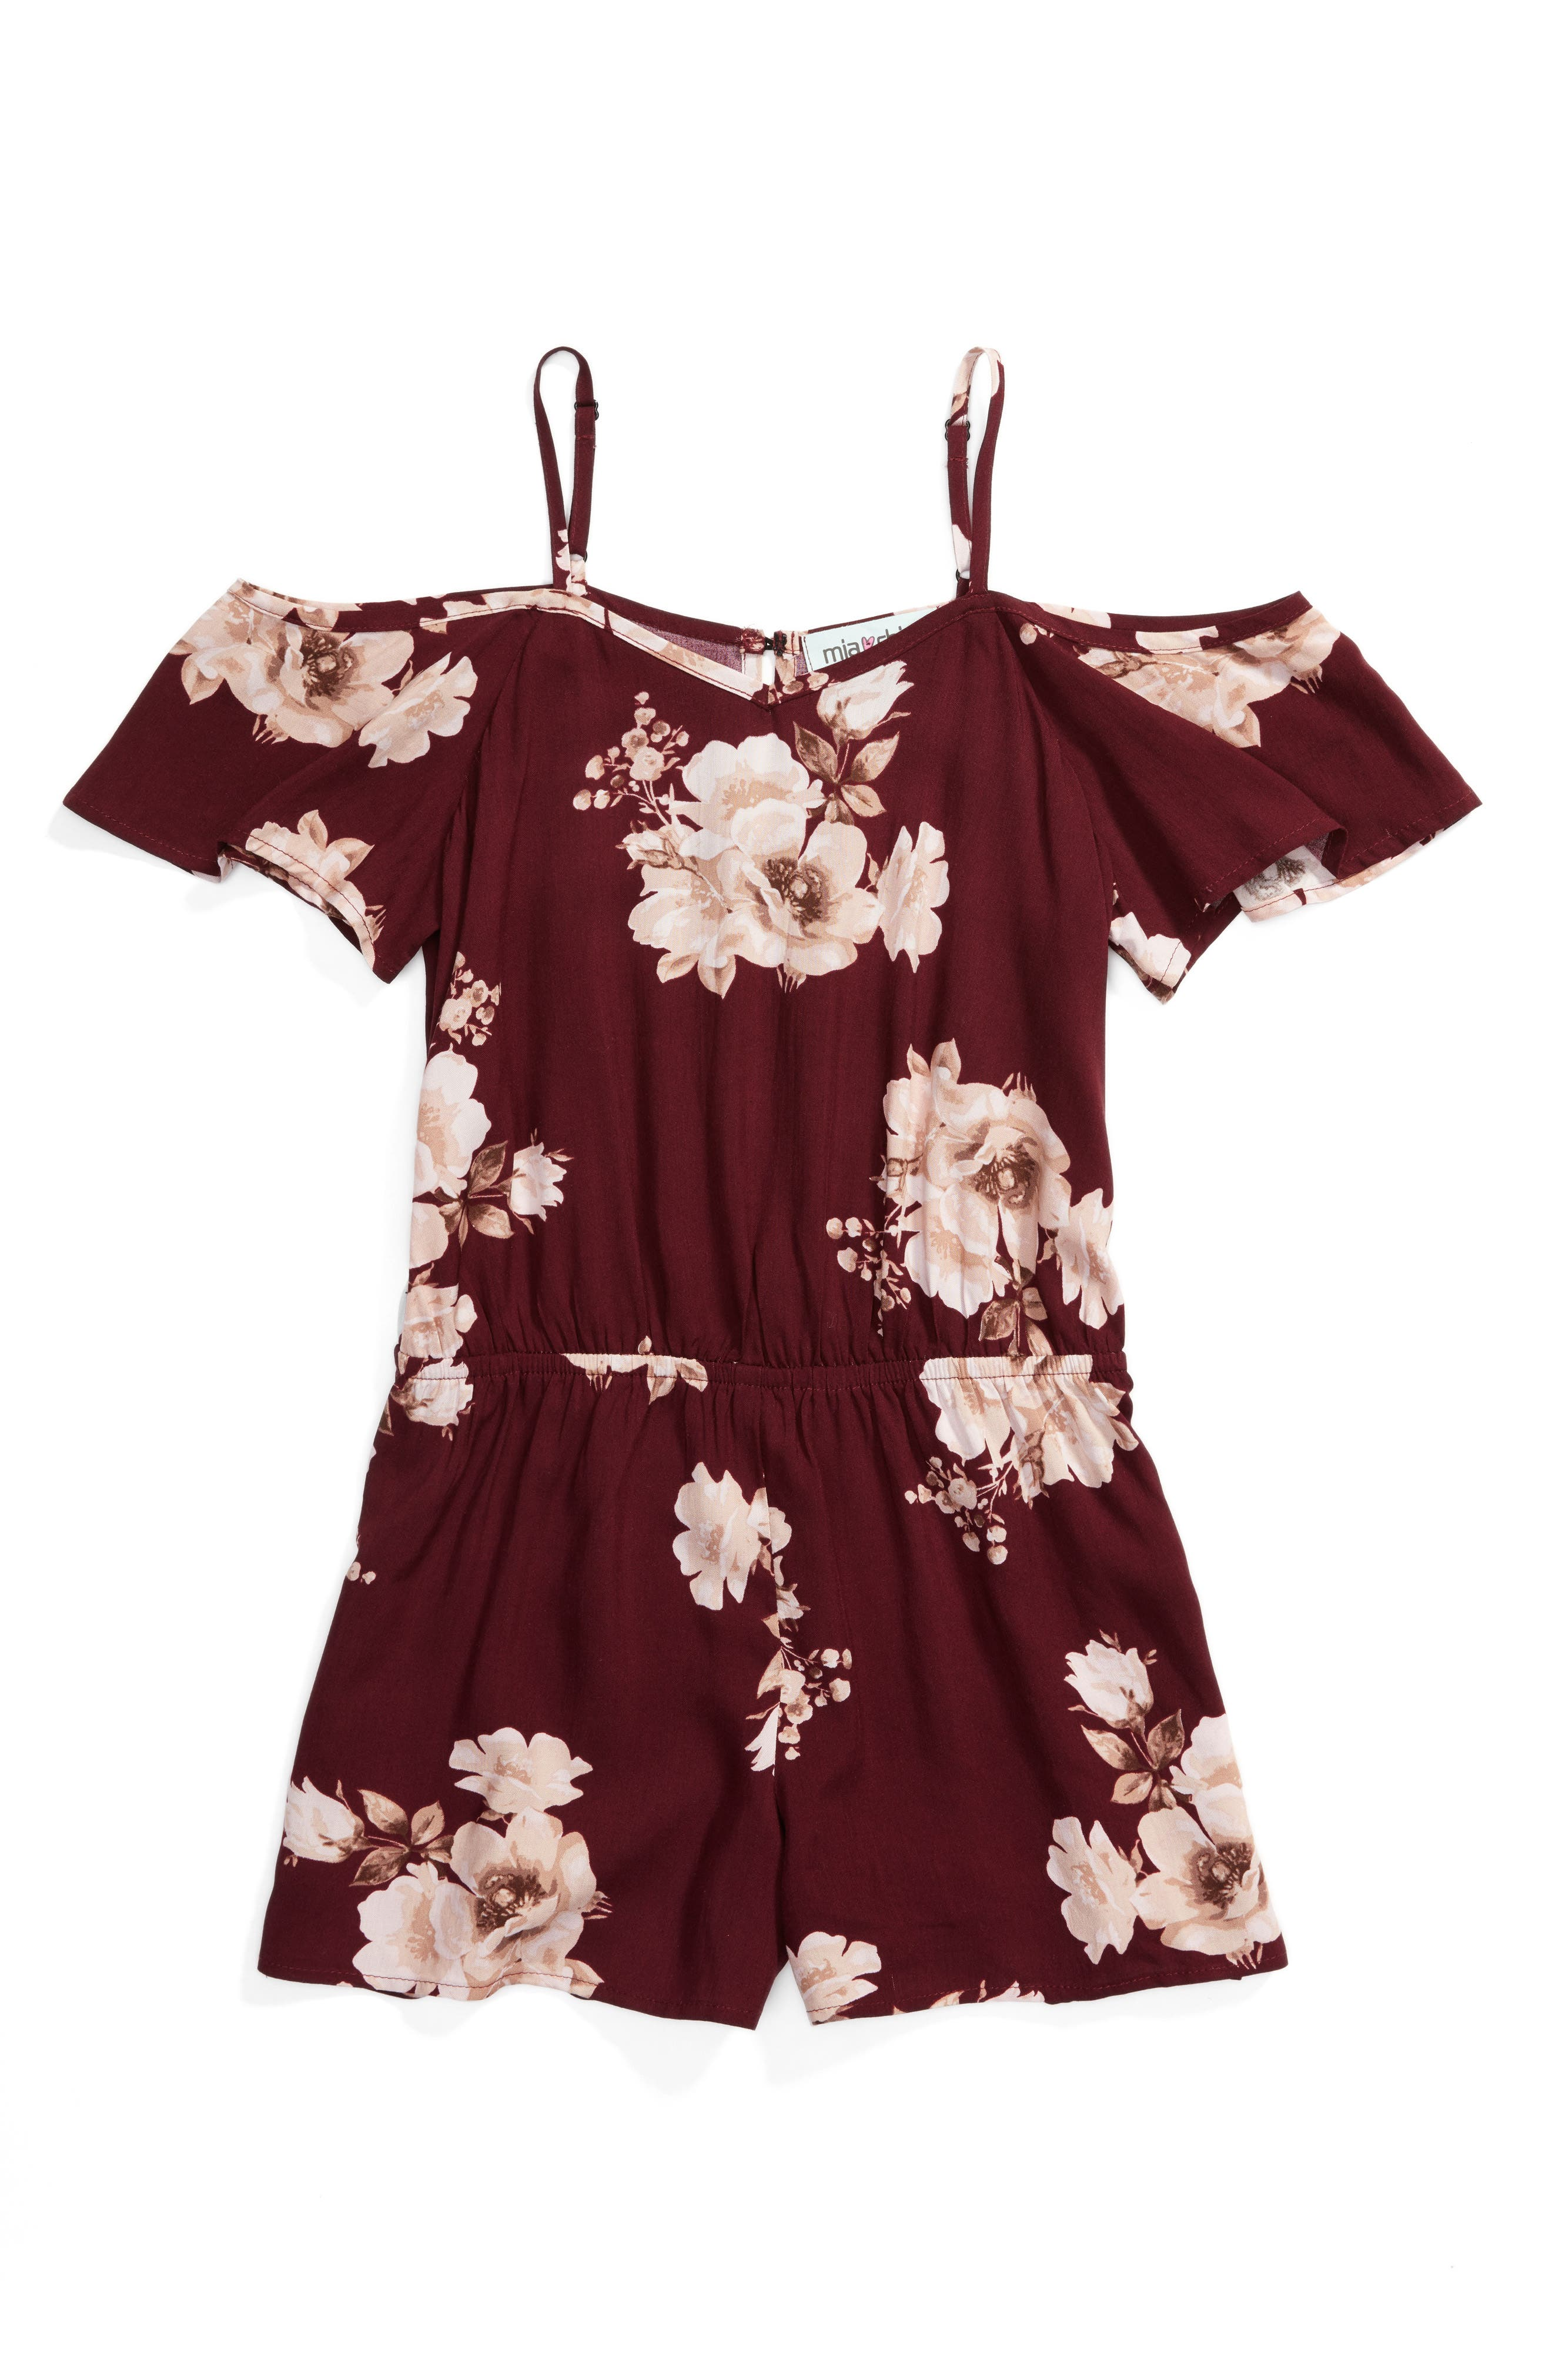 Main Image - Mia Chica Cold Shoulder Romper (Big Girls)